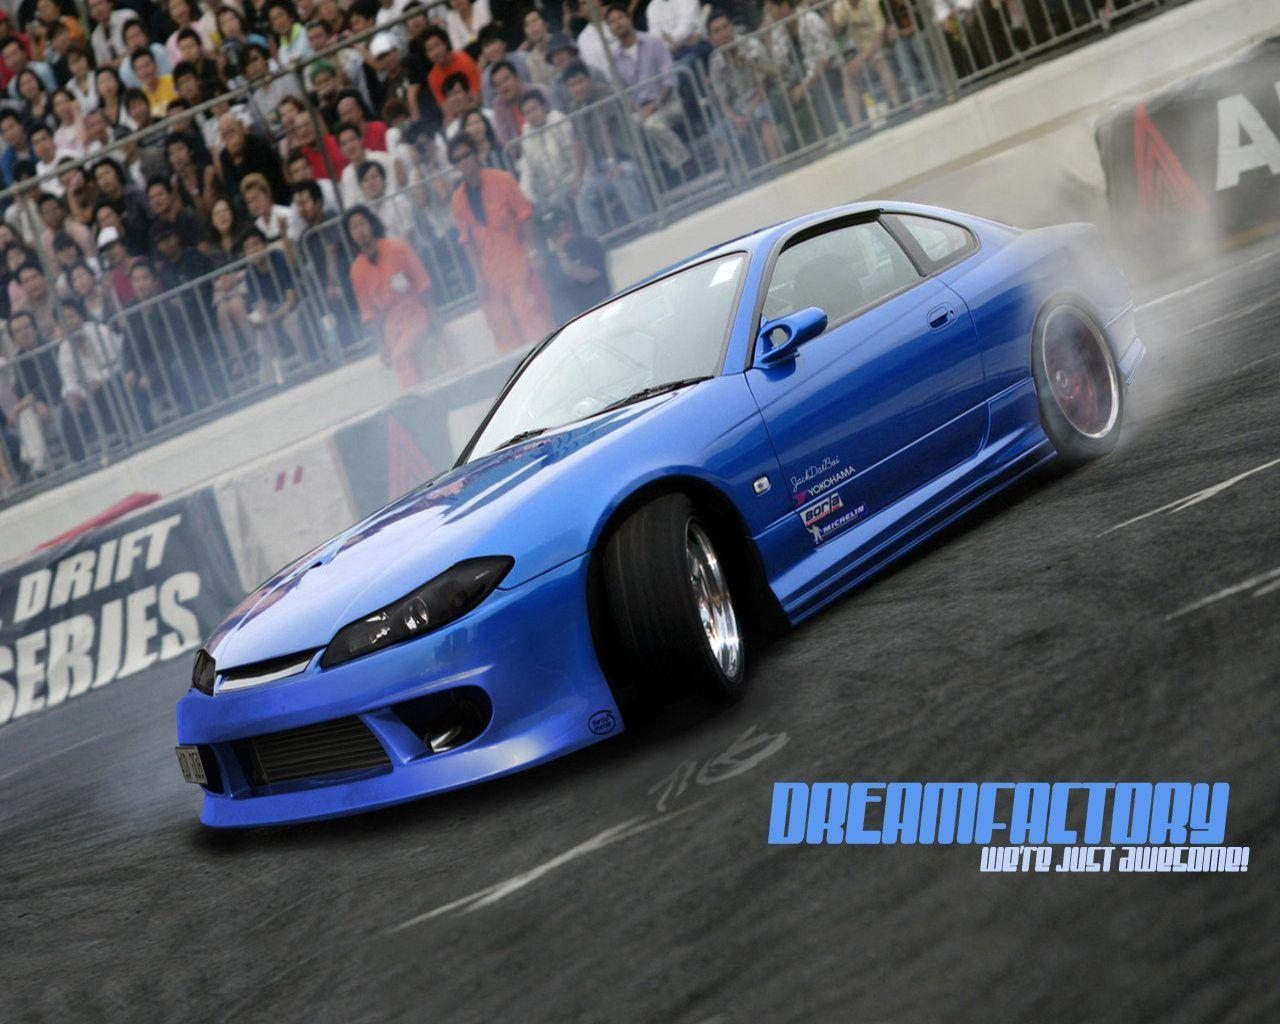 s15 wallpaper - photo #35